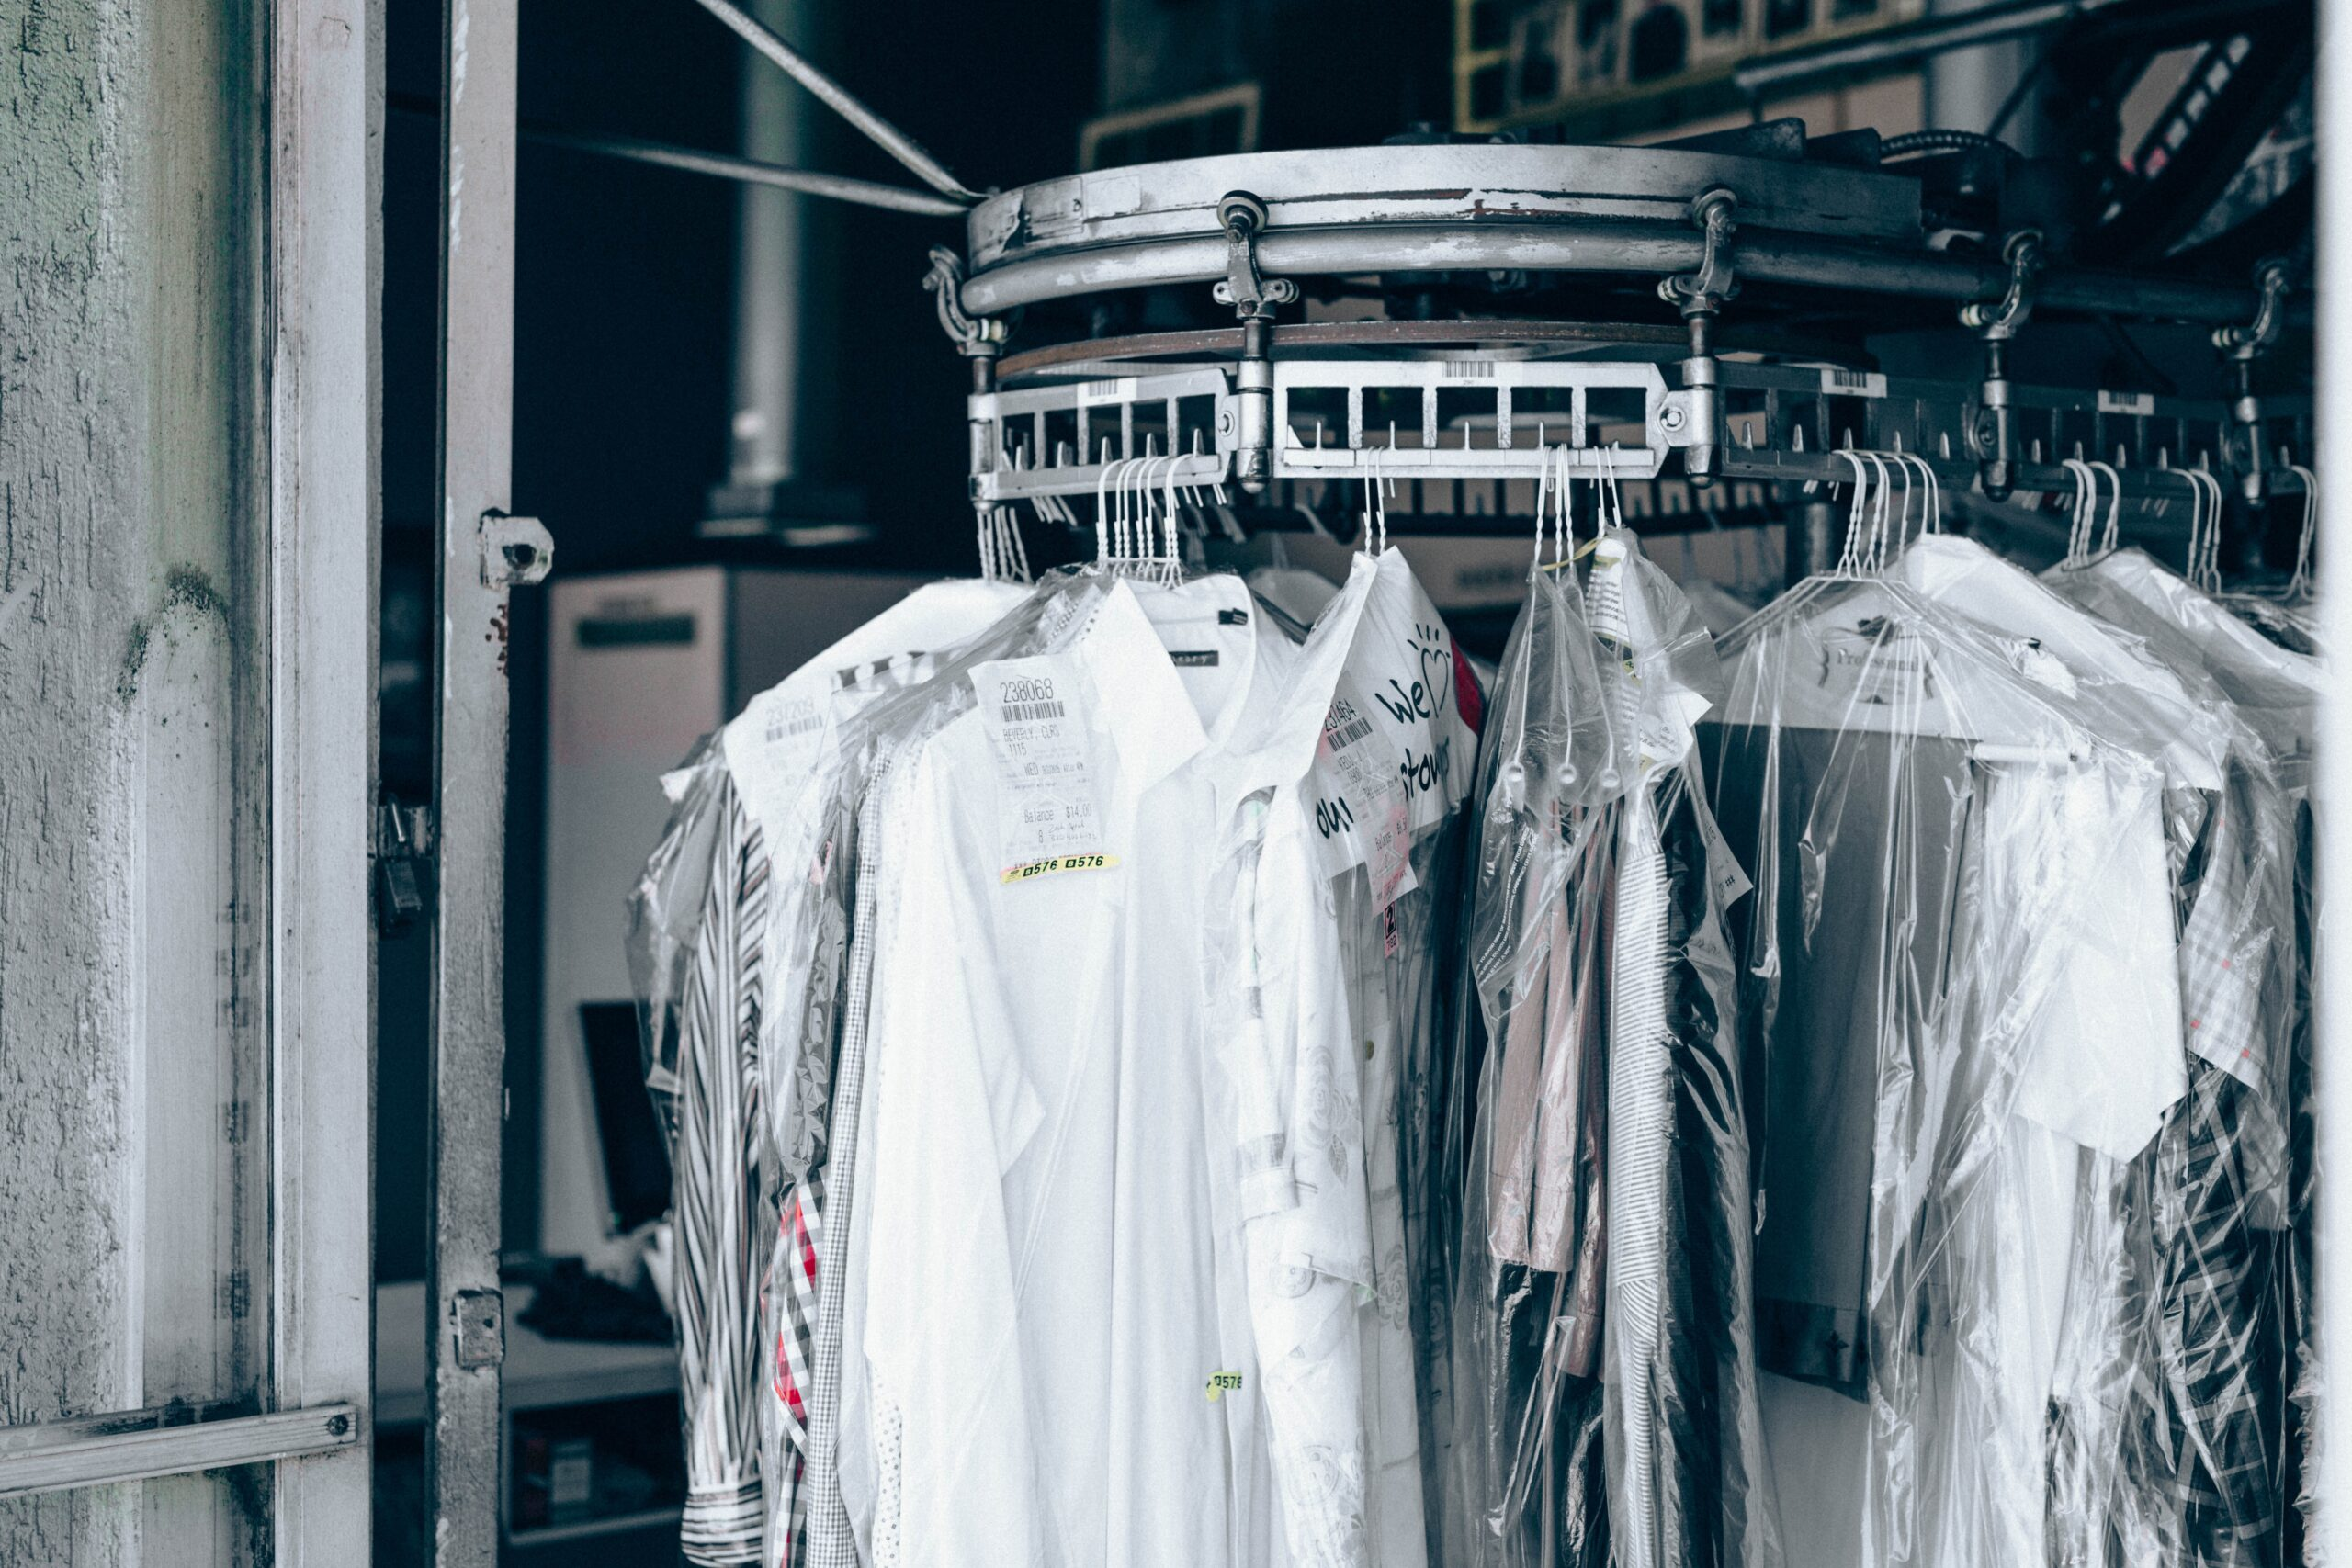 The Beginner's Guide to Dry Cleaning